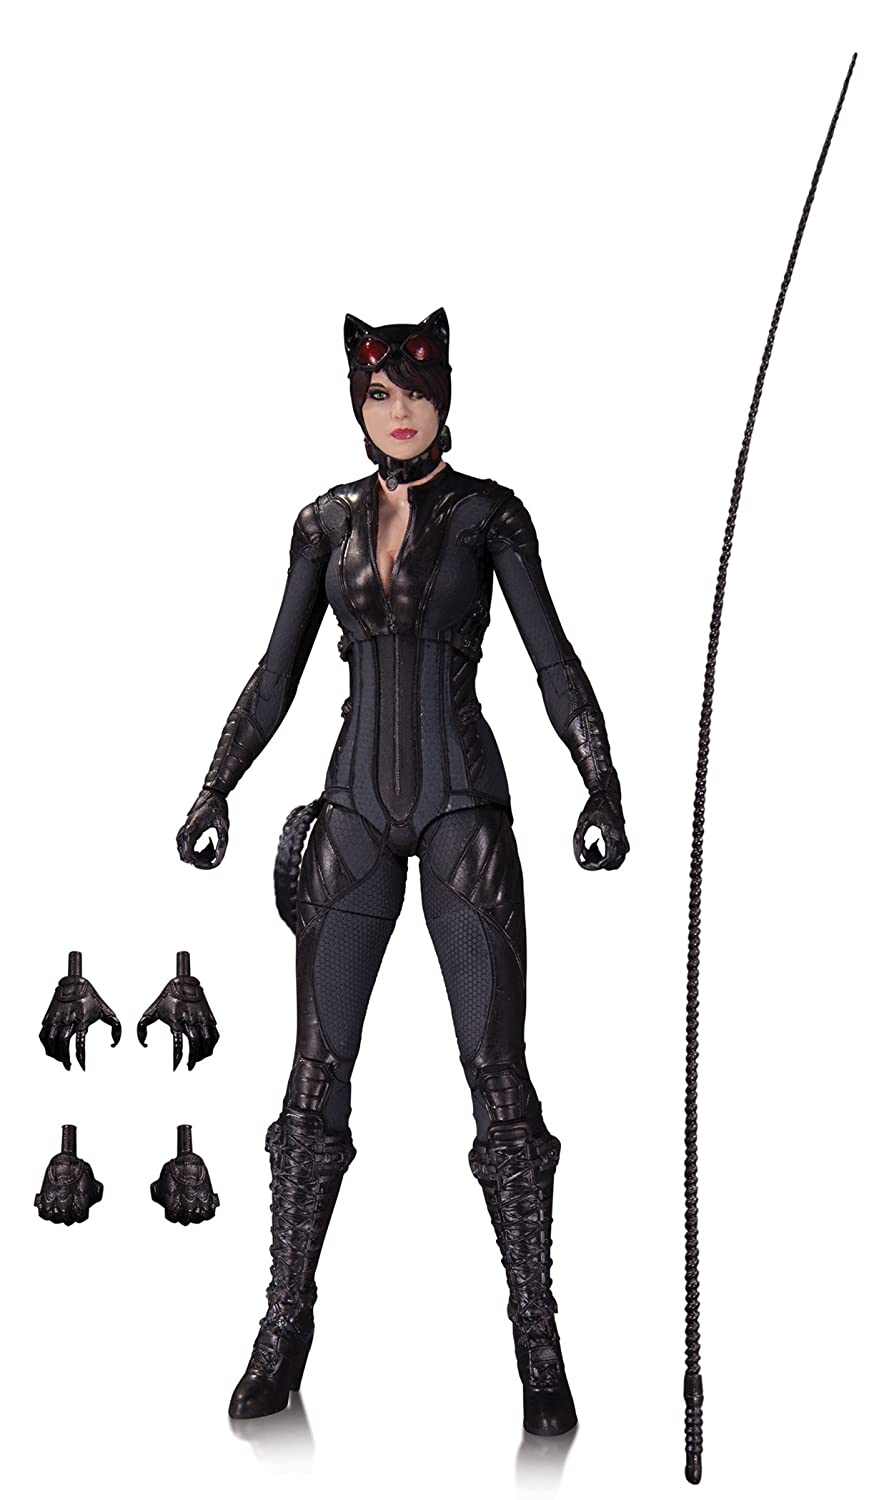 Amazon.com DC Collectibles Batman Arkham Knight Catwoman Action Figure Toy Toys u0026 Games  sc 1 st  Amazon.com & Amazon.com: DC Collectibles Batman Arkham Knight: Catwoman Action ...